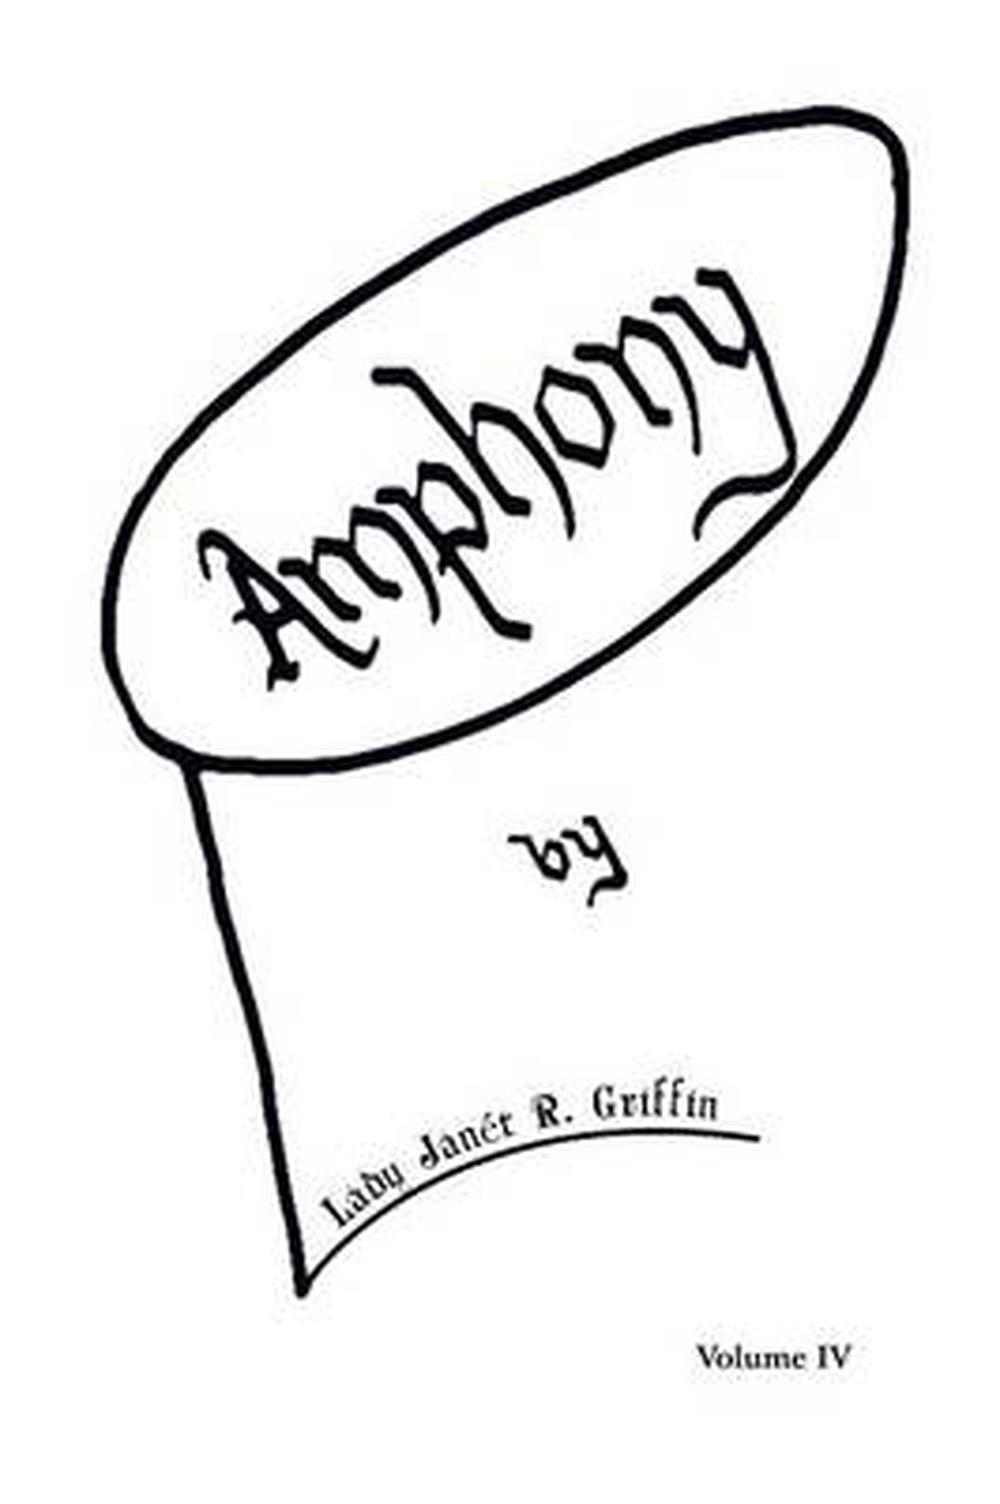 Amphony: Volume IV by Lady Janet R. Griffin (English